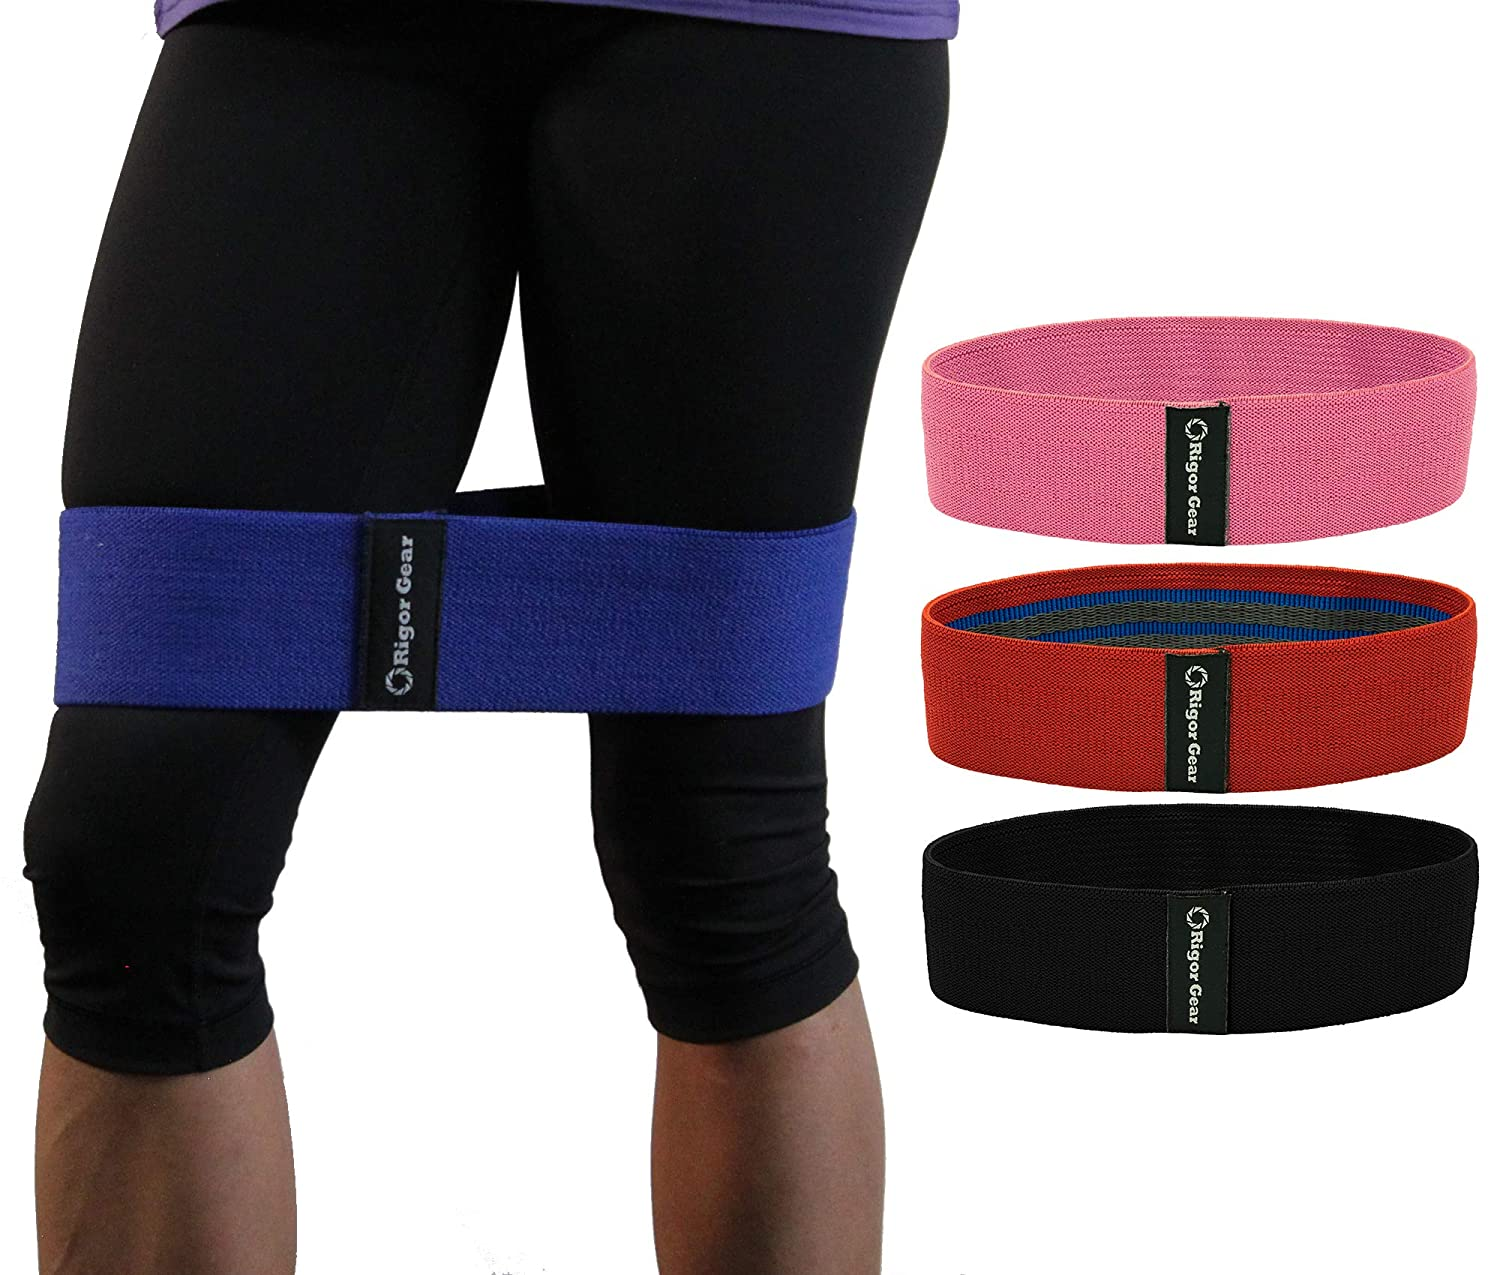 c321d8714eb2 Amazon.com : WODSuperStore Resistance Band for Legs & Butt - Hip Booty  Circle Bands to Tone Glute, Thighs & Hips : Sports & Outdoors